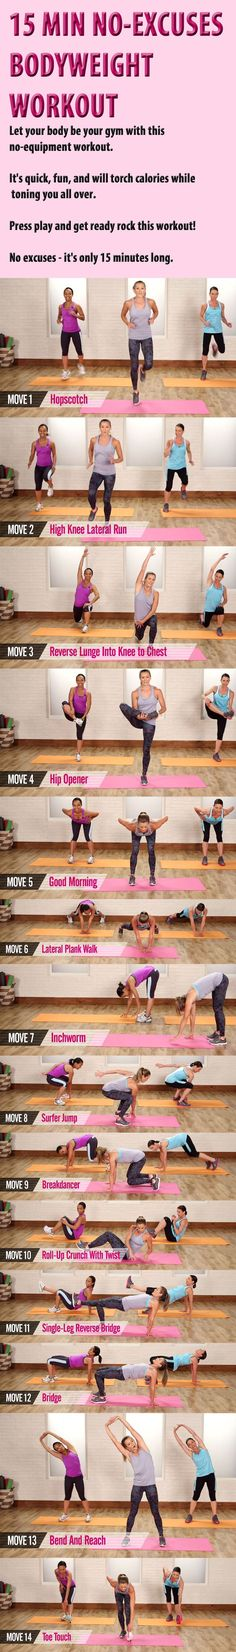 15- Minute No-Excuses Bodyweight Workout | Class FitSugar. #workout #exercise #bodyweightworkout #bodyweight #fitness